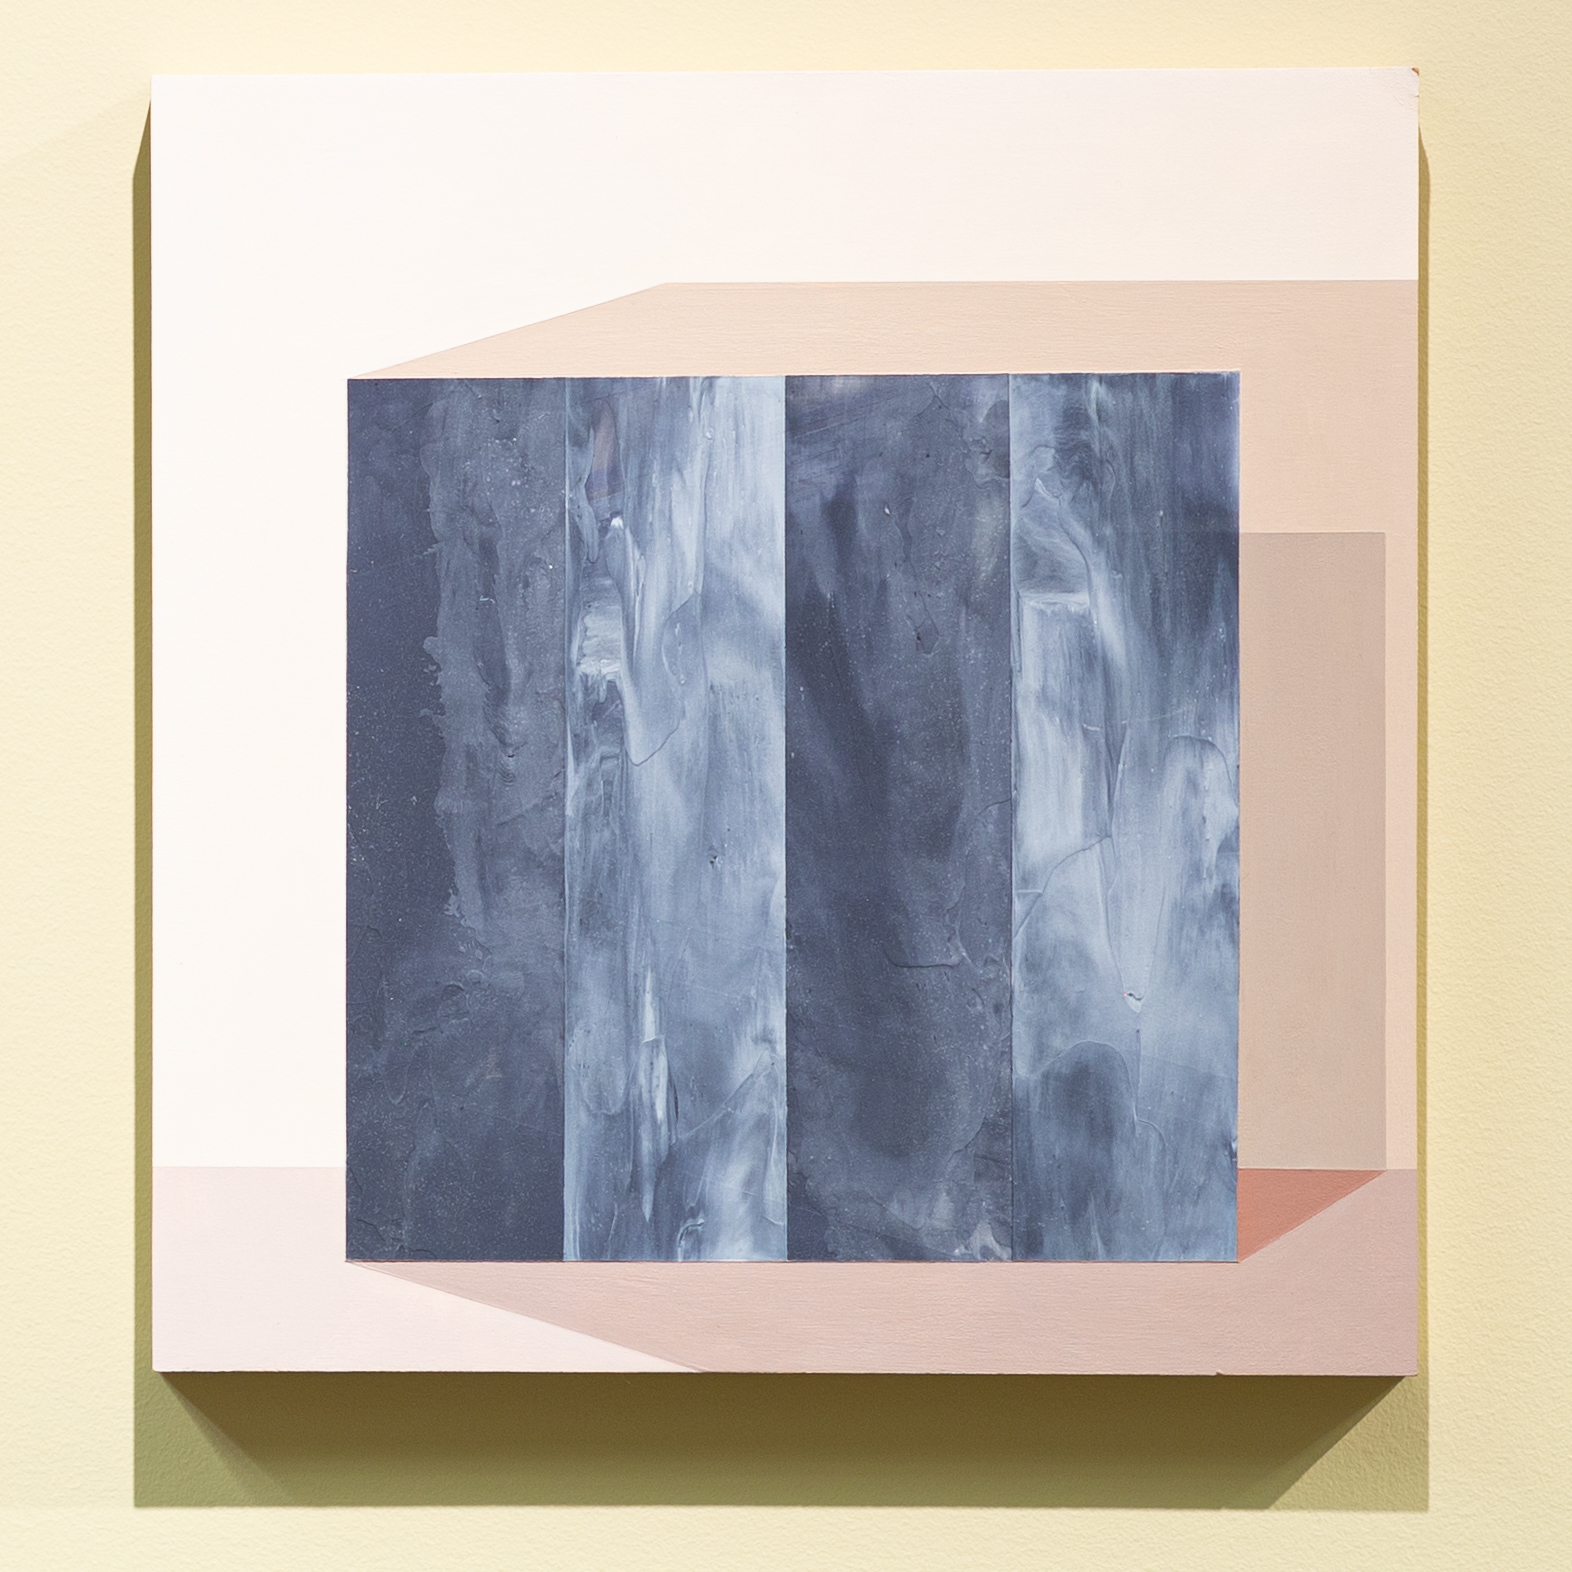 """Mary Laube, The Wall Opened Noiselessly Before Me, 12"""" x 12"""", acrylic on panel, 2018"""